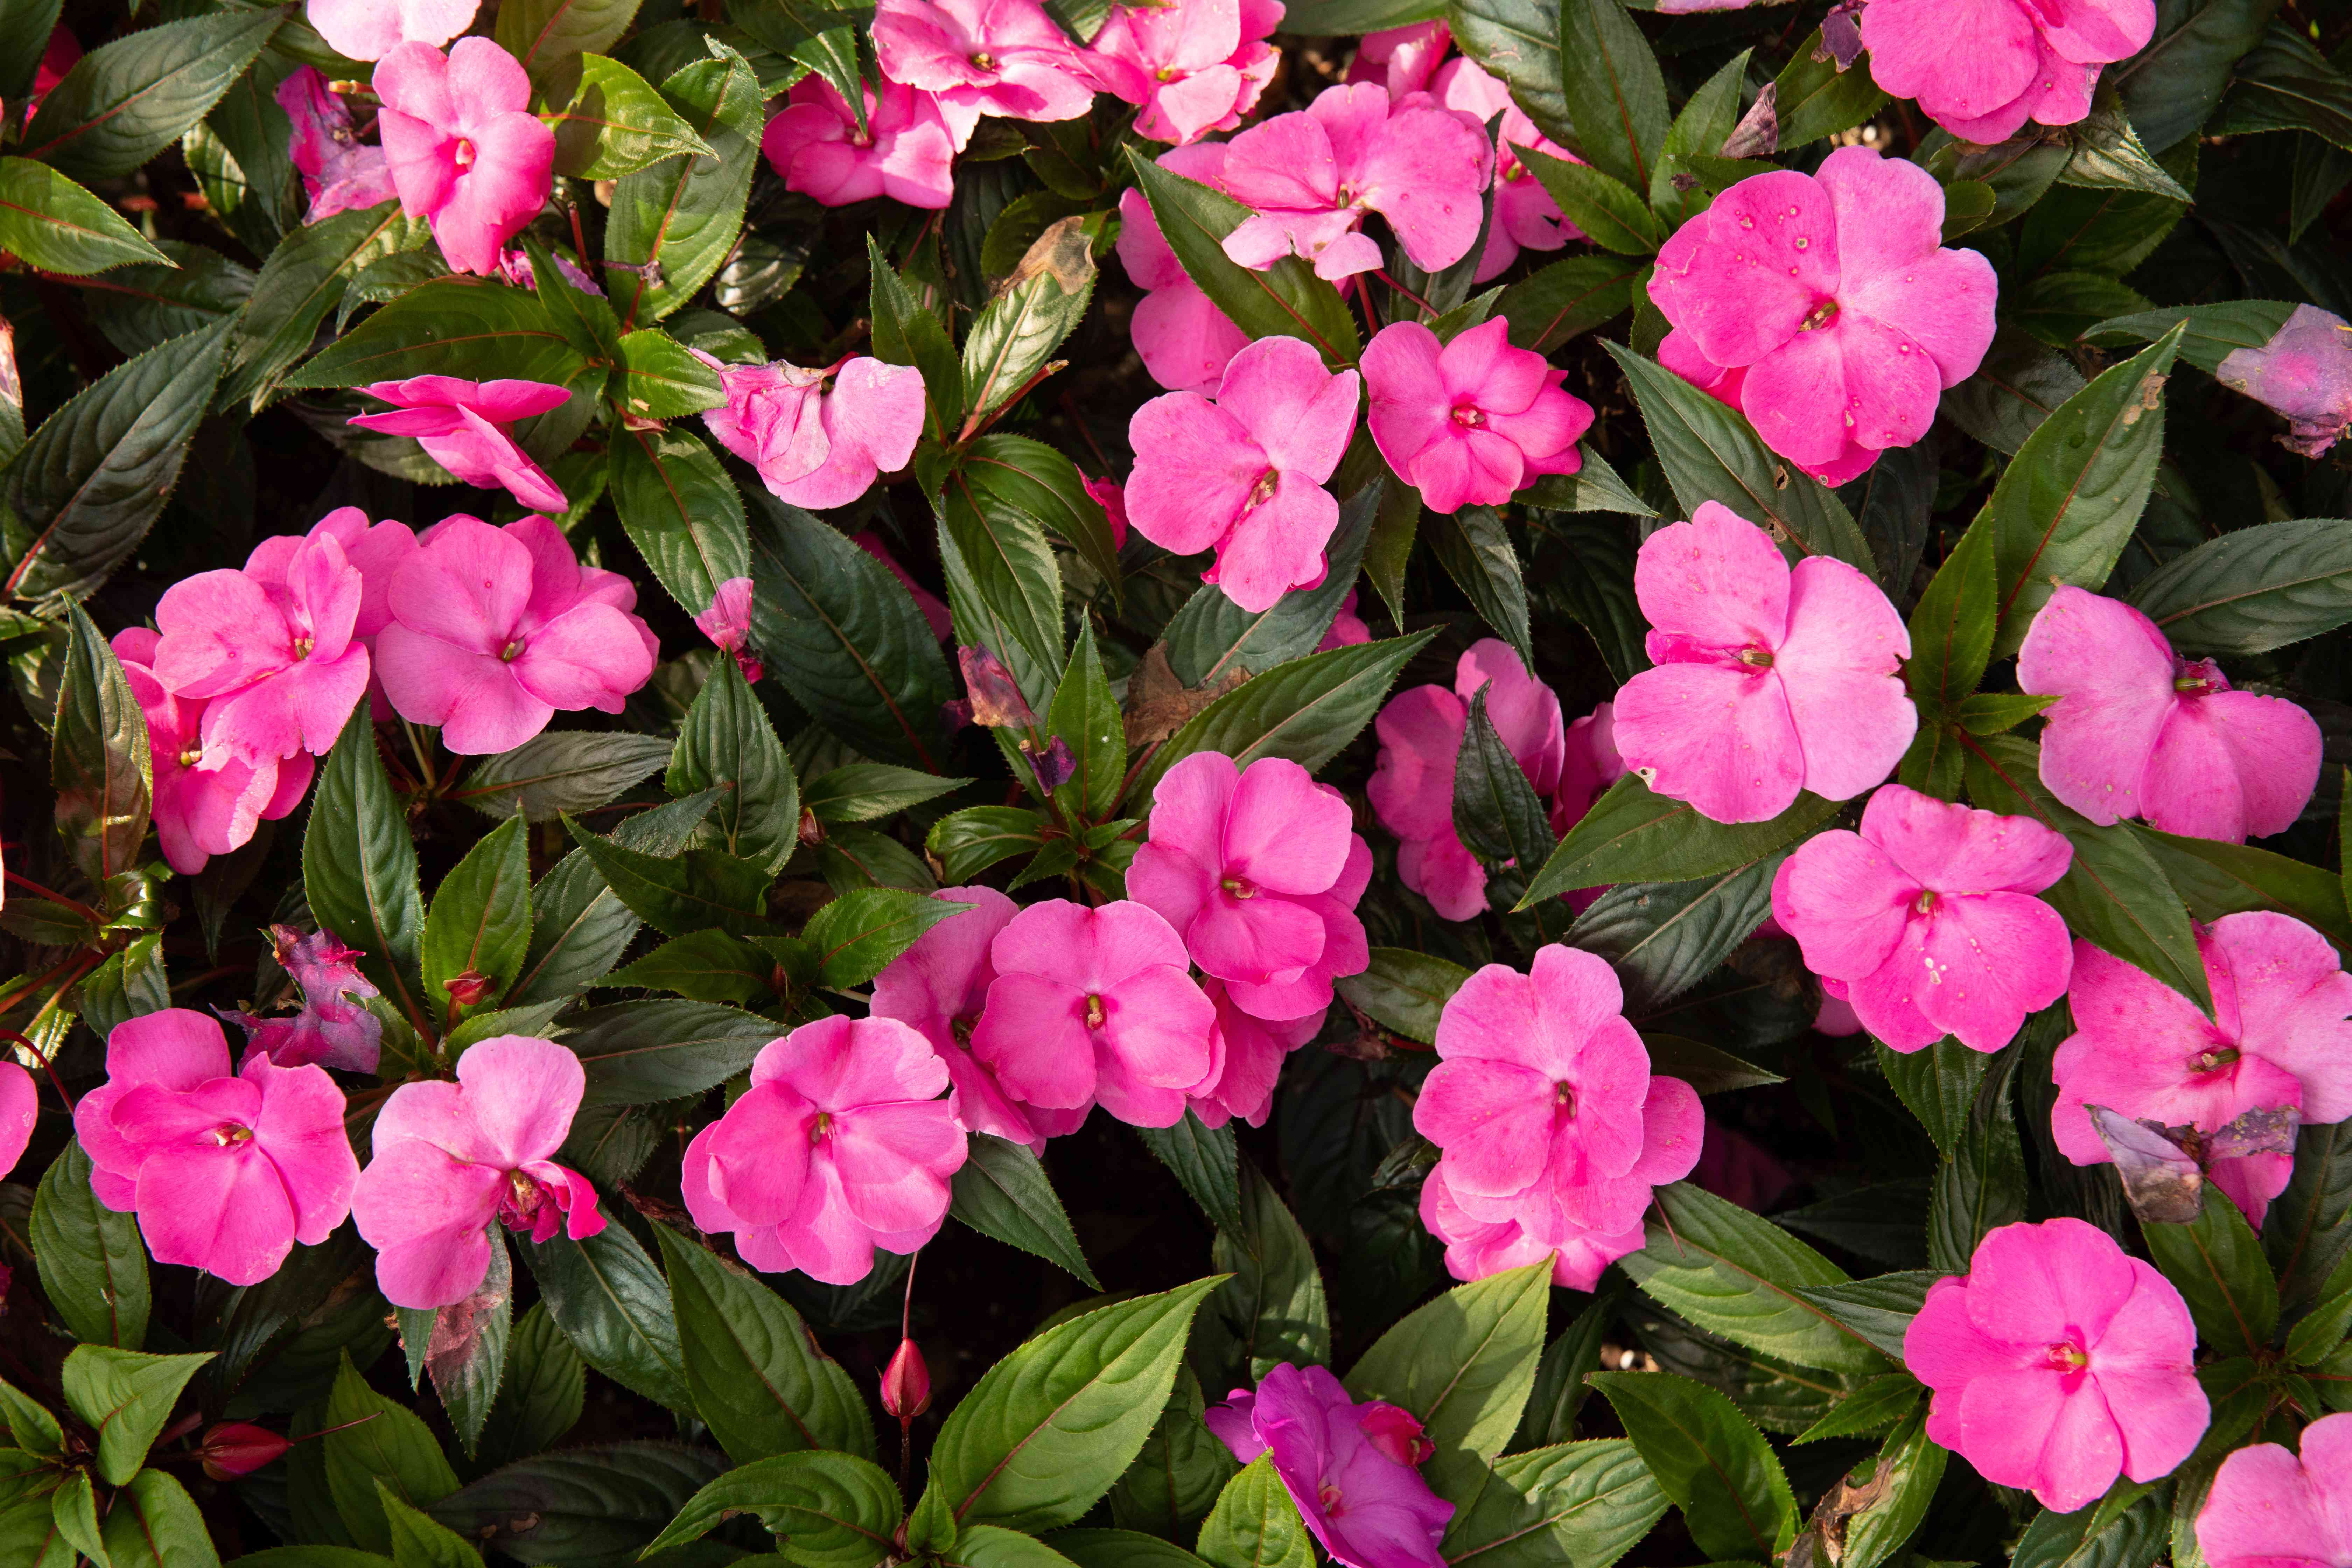 Impatiens plant with dark green leaves surrounding bright pink flowers